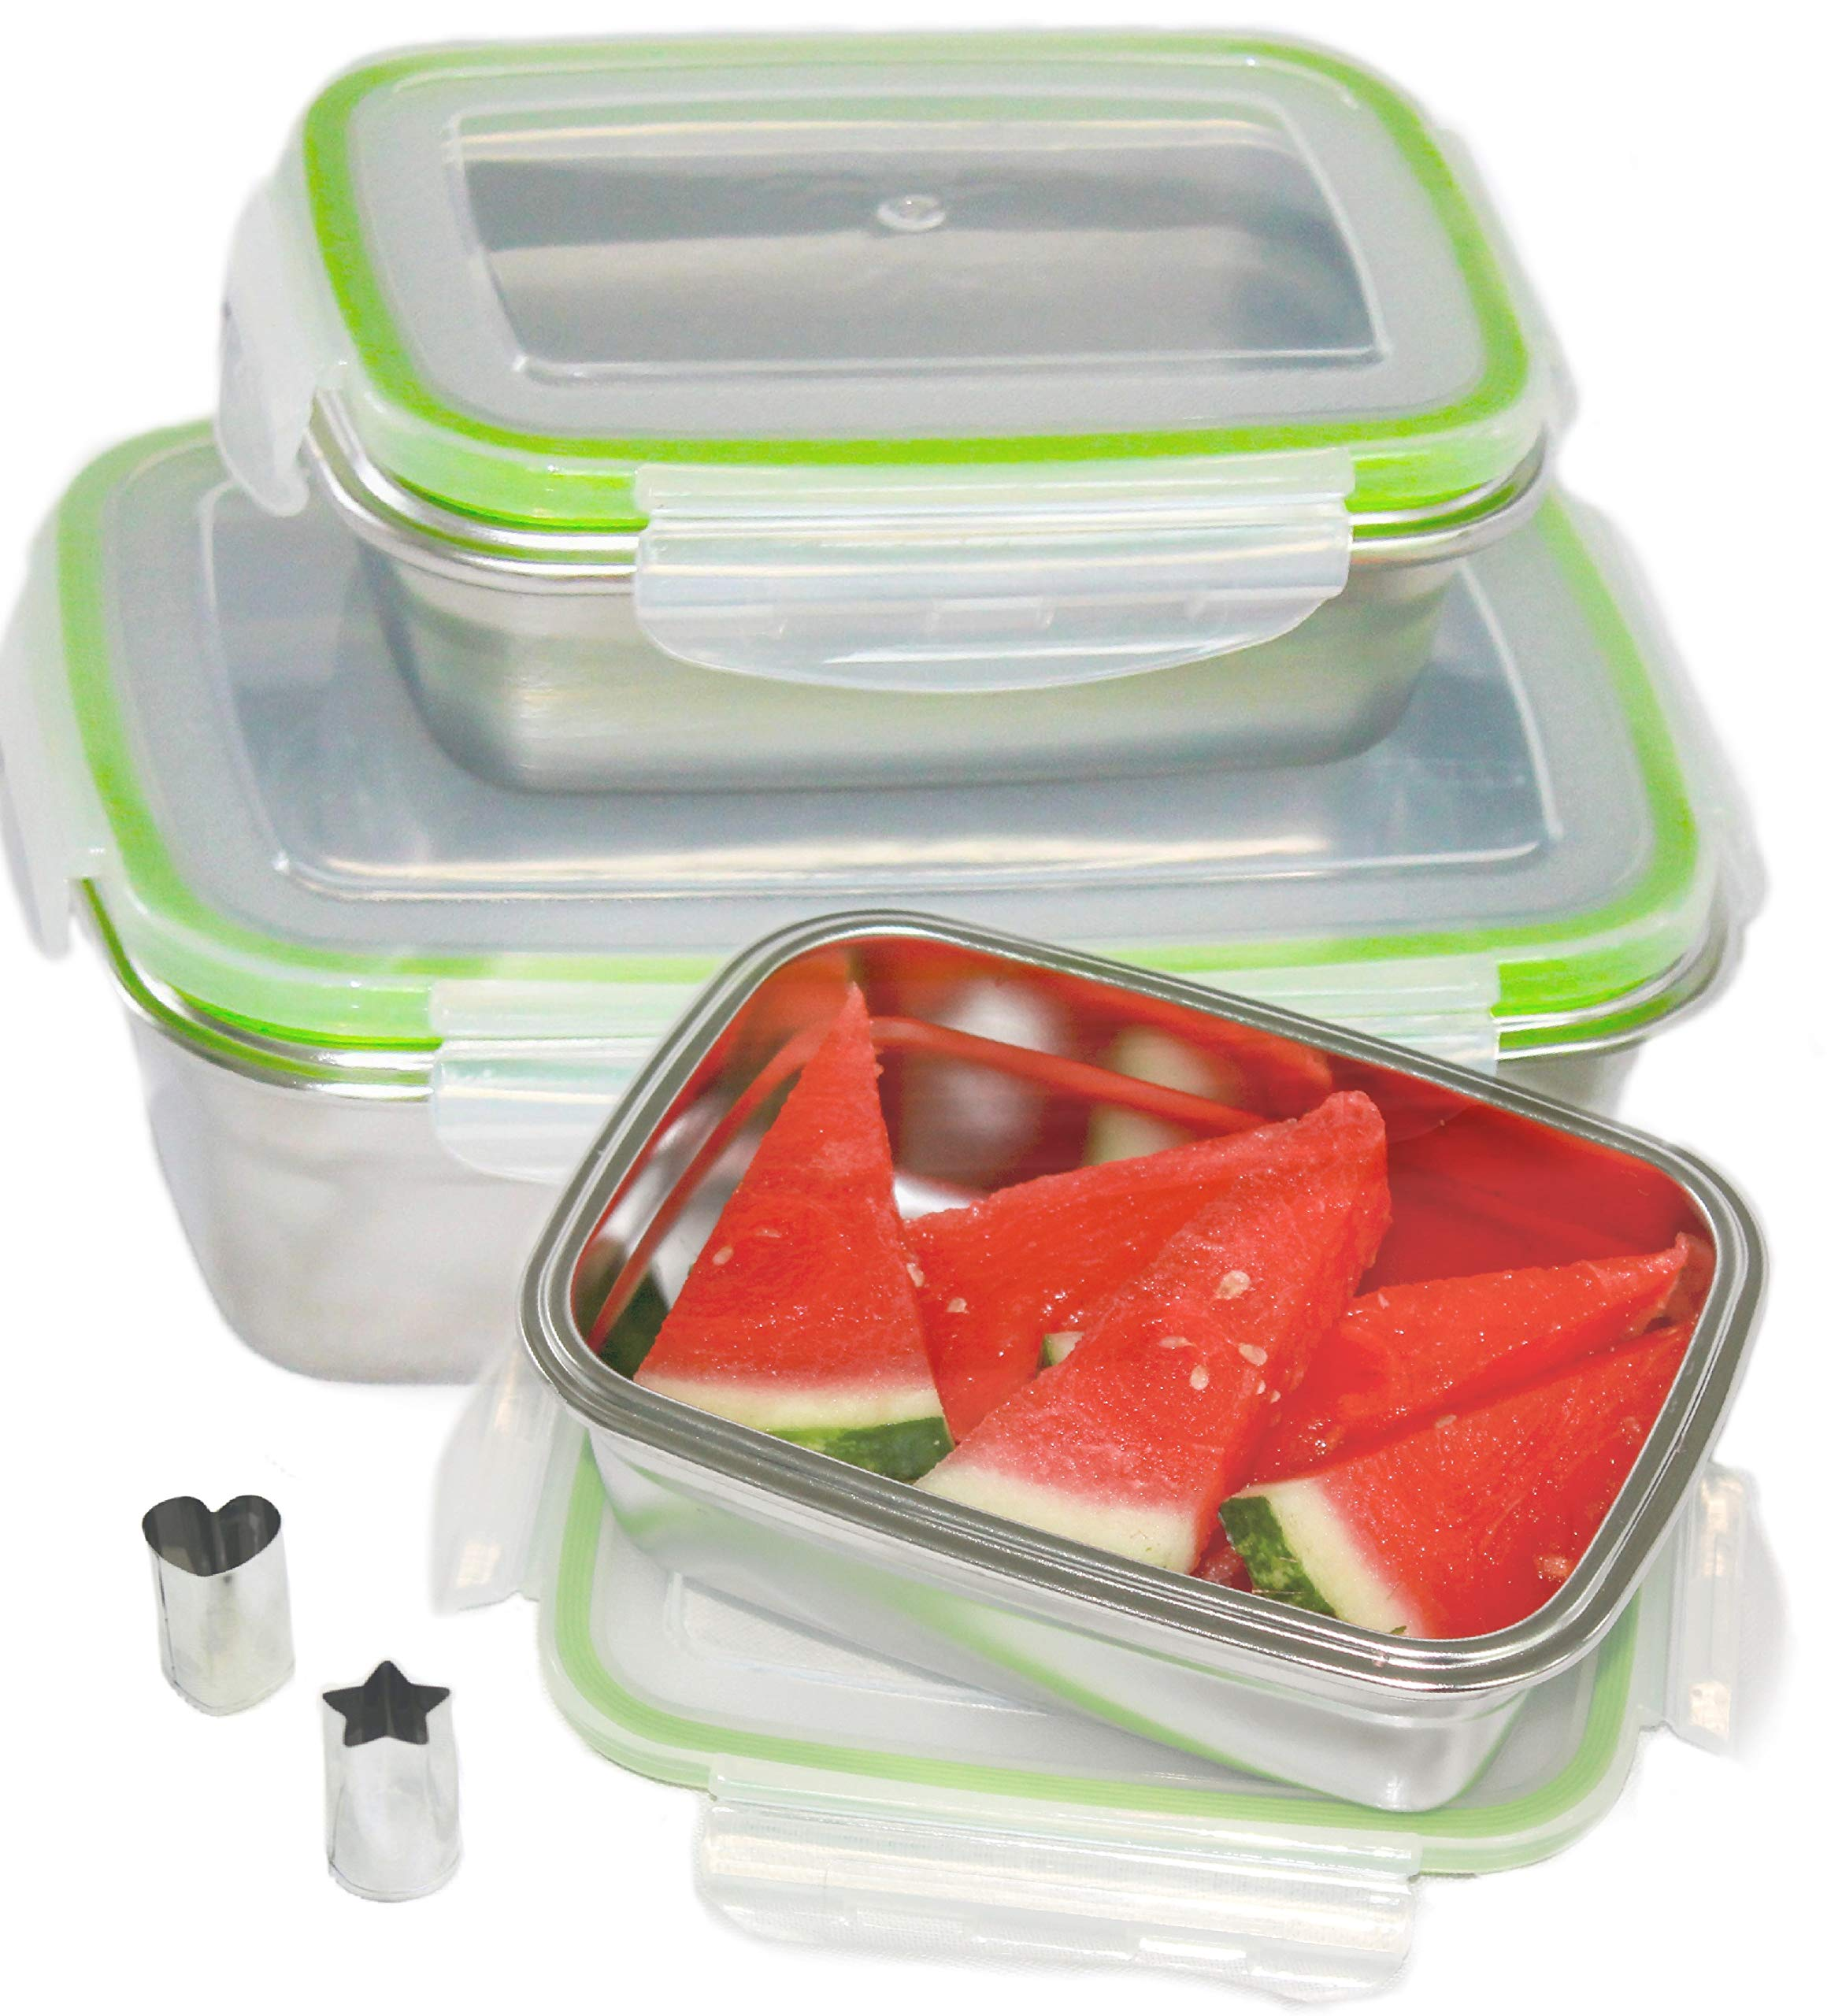 LILYS KITCHEN Leakproof Stainless Steel Food Containers with Airtight Lids, Set of 3, BPA FREE, Bonus Item - Mini Heart and Star Shaped - Fruit, Veggie, Cheese and Cookie Cutters by LILYS KITCHEN